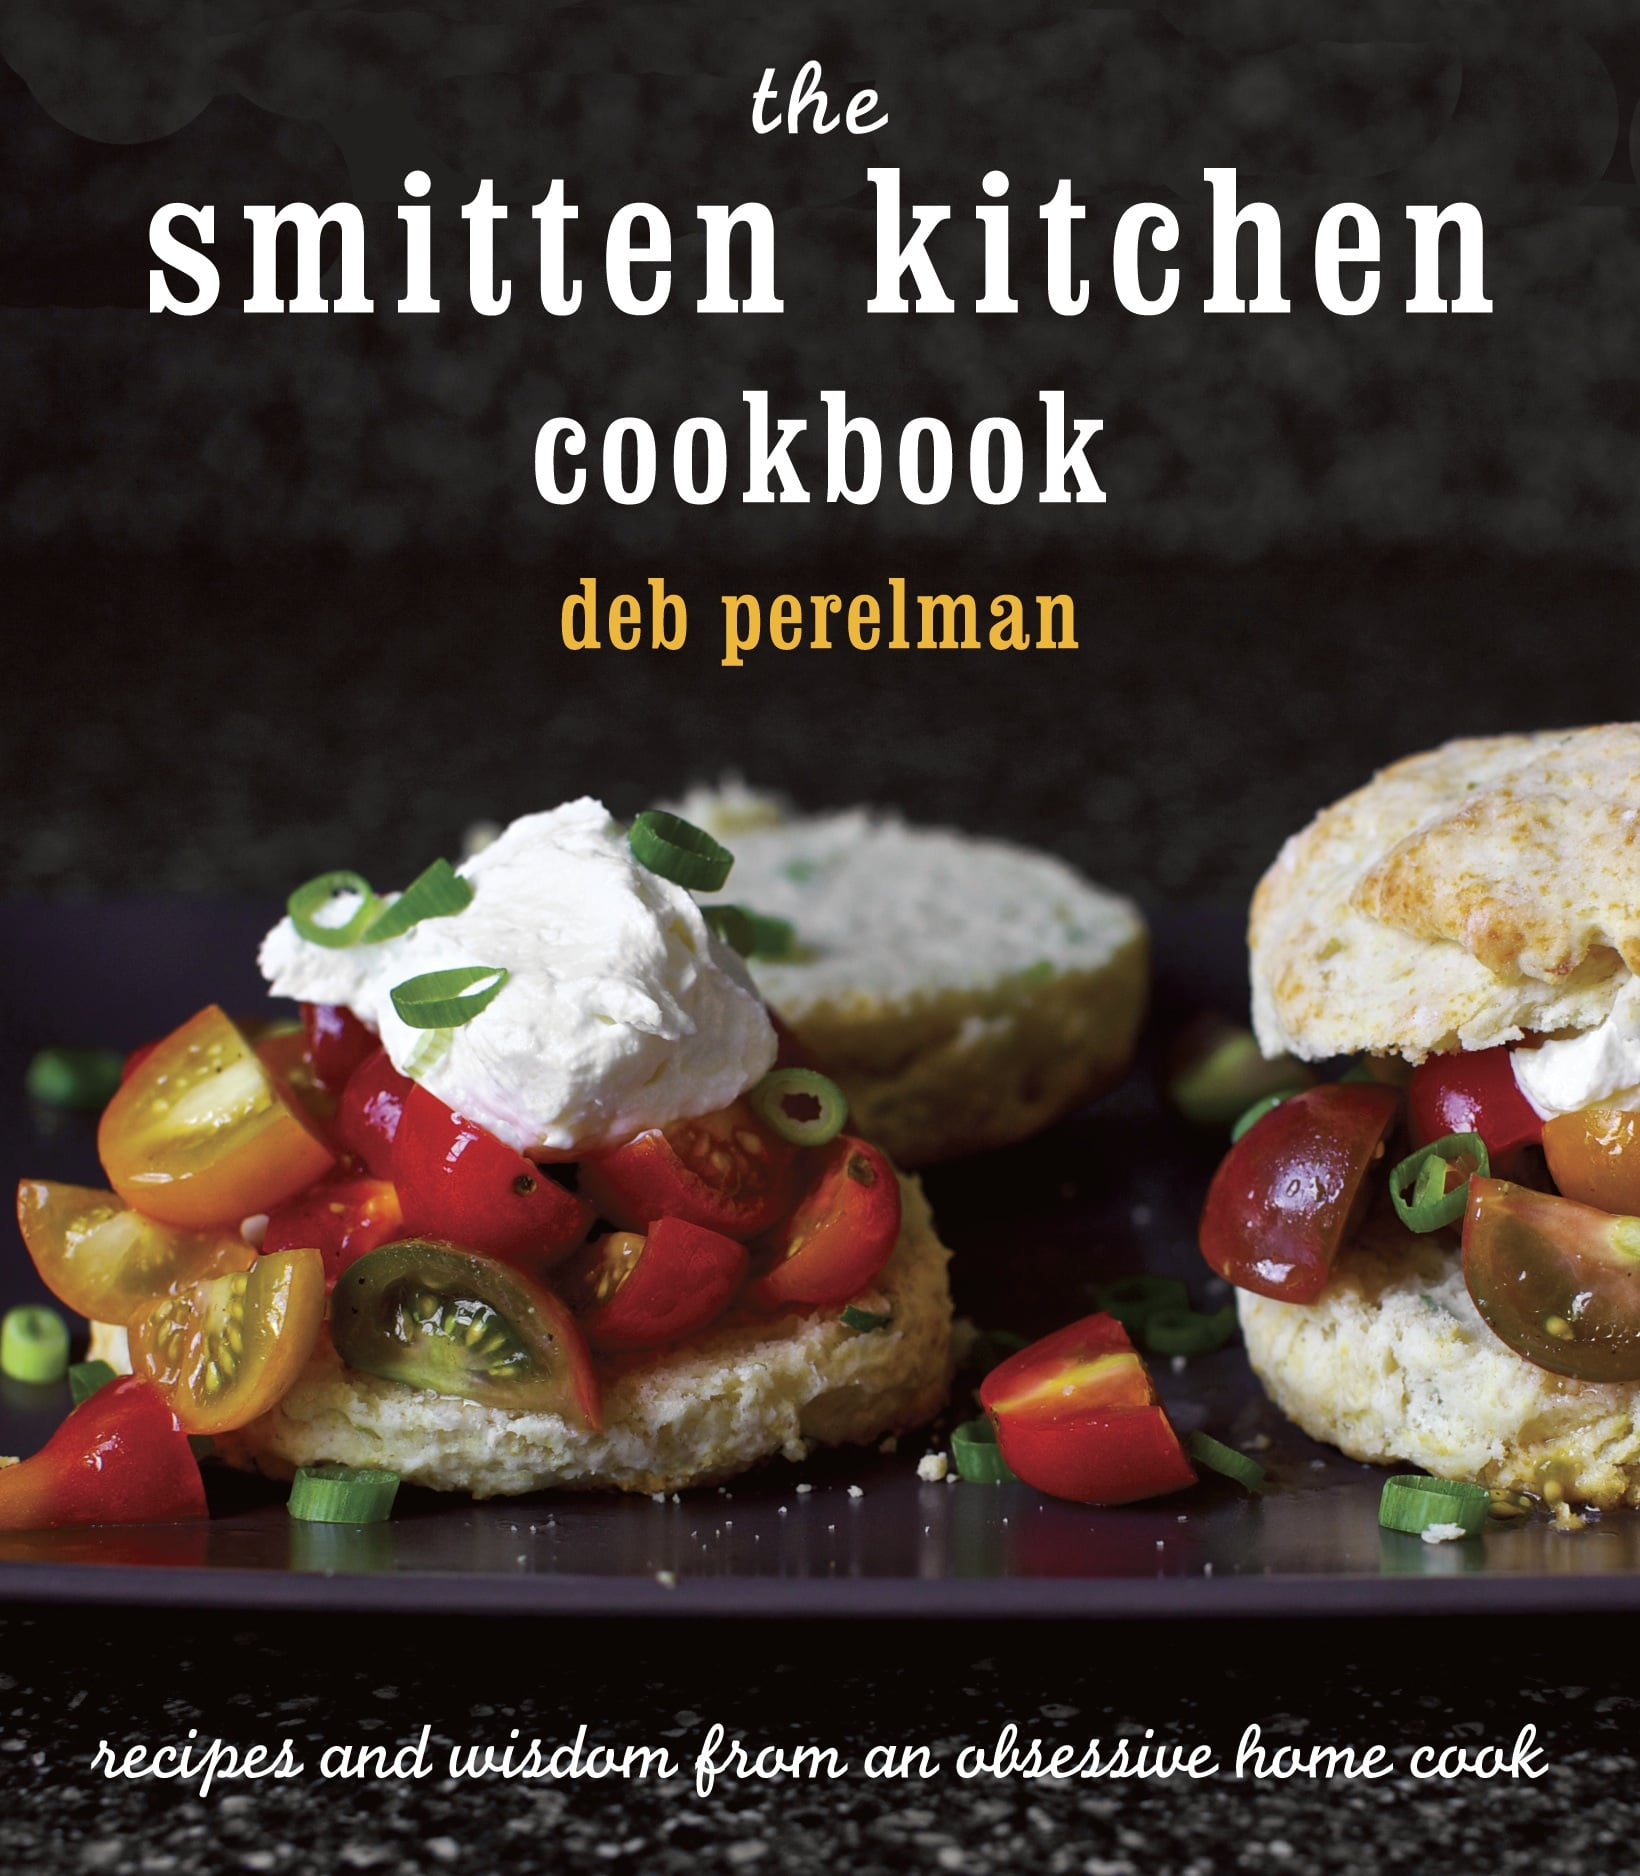 I've been a big fan of Deb Perelman's blog — to me, she's always made cooking (even the fancy stuff) seem fun and easy — and her photos are downright gorgeous. I can't wait to add her Smitten Kitchen cookbook ($20) to my collection. And, while I selfishly want one just for me, it would also make a pretty awesome gift (foodie, or not!). — Hannah Weil, associate editor